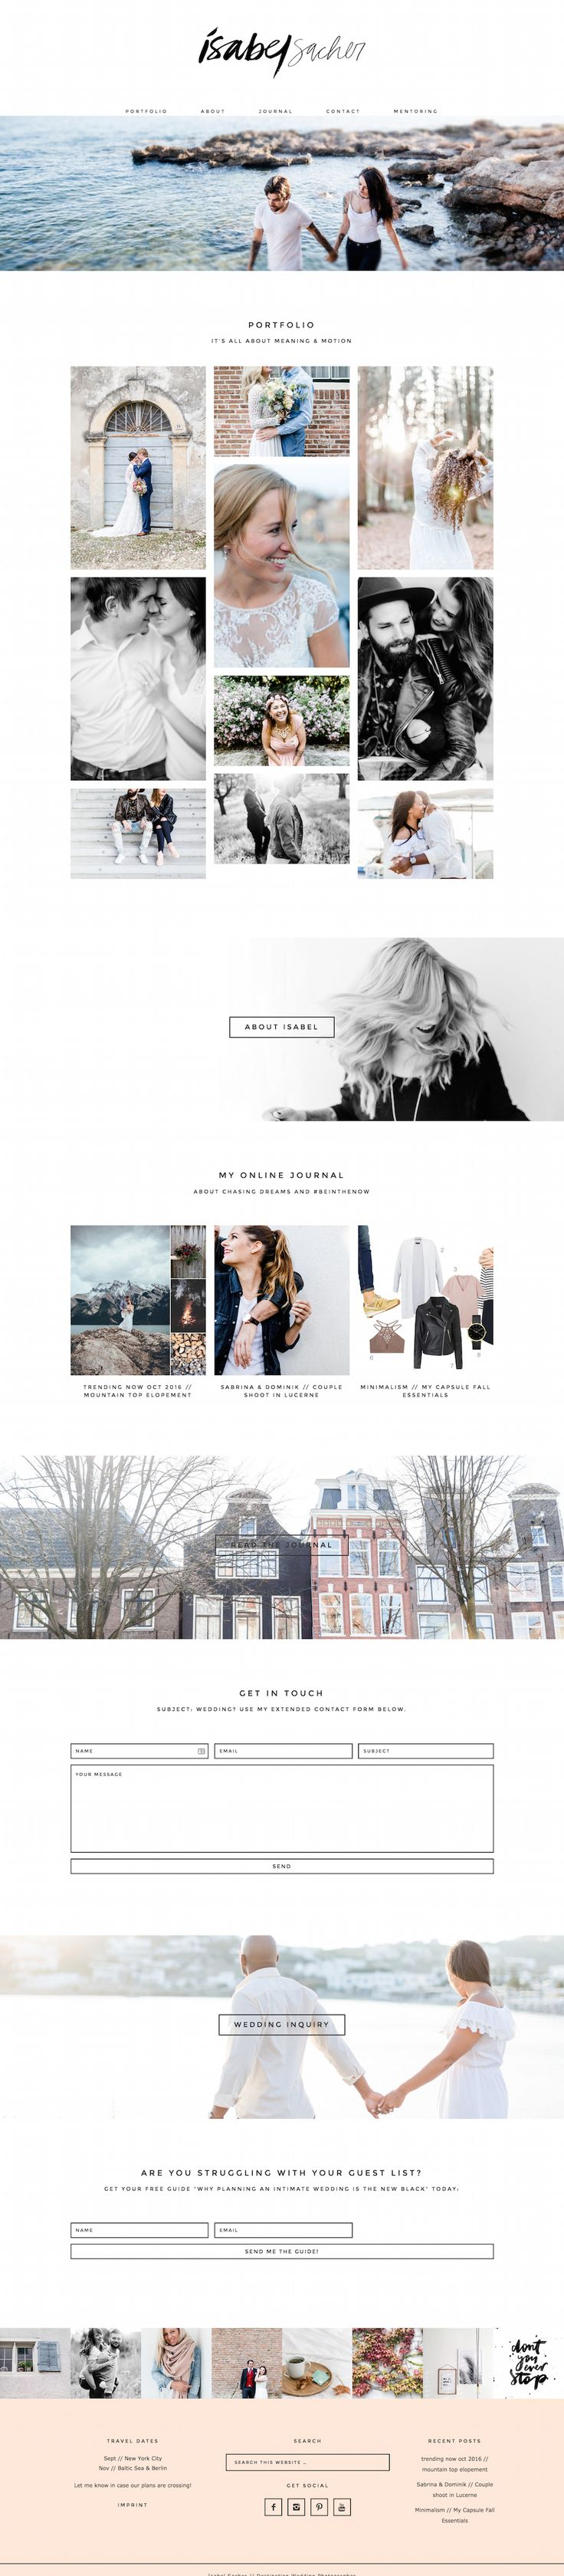 We love Isabel Sacher's Photography site running on Station Seven's Coastal WordPress theme.